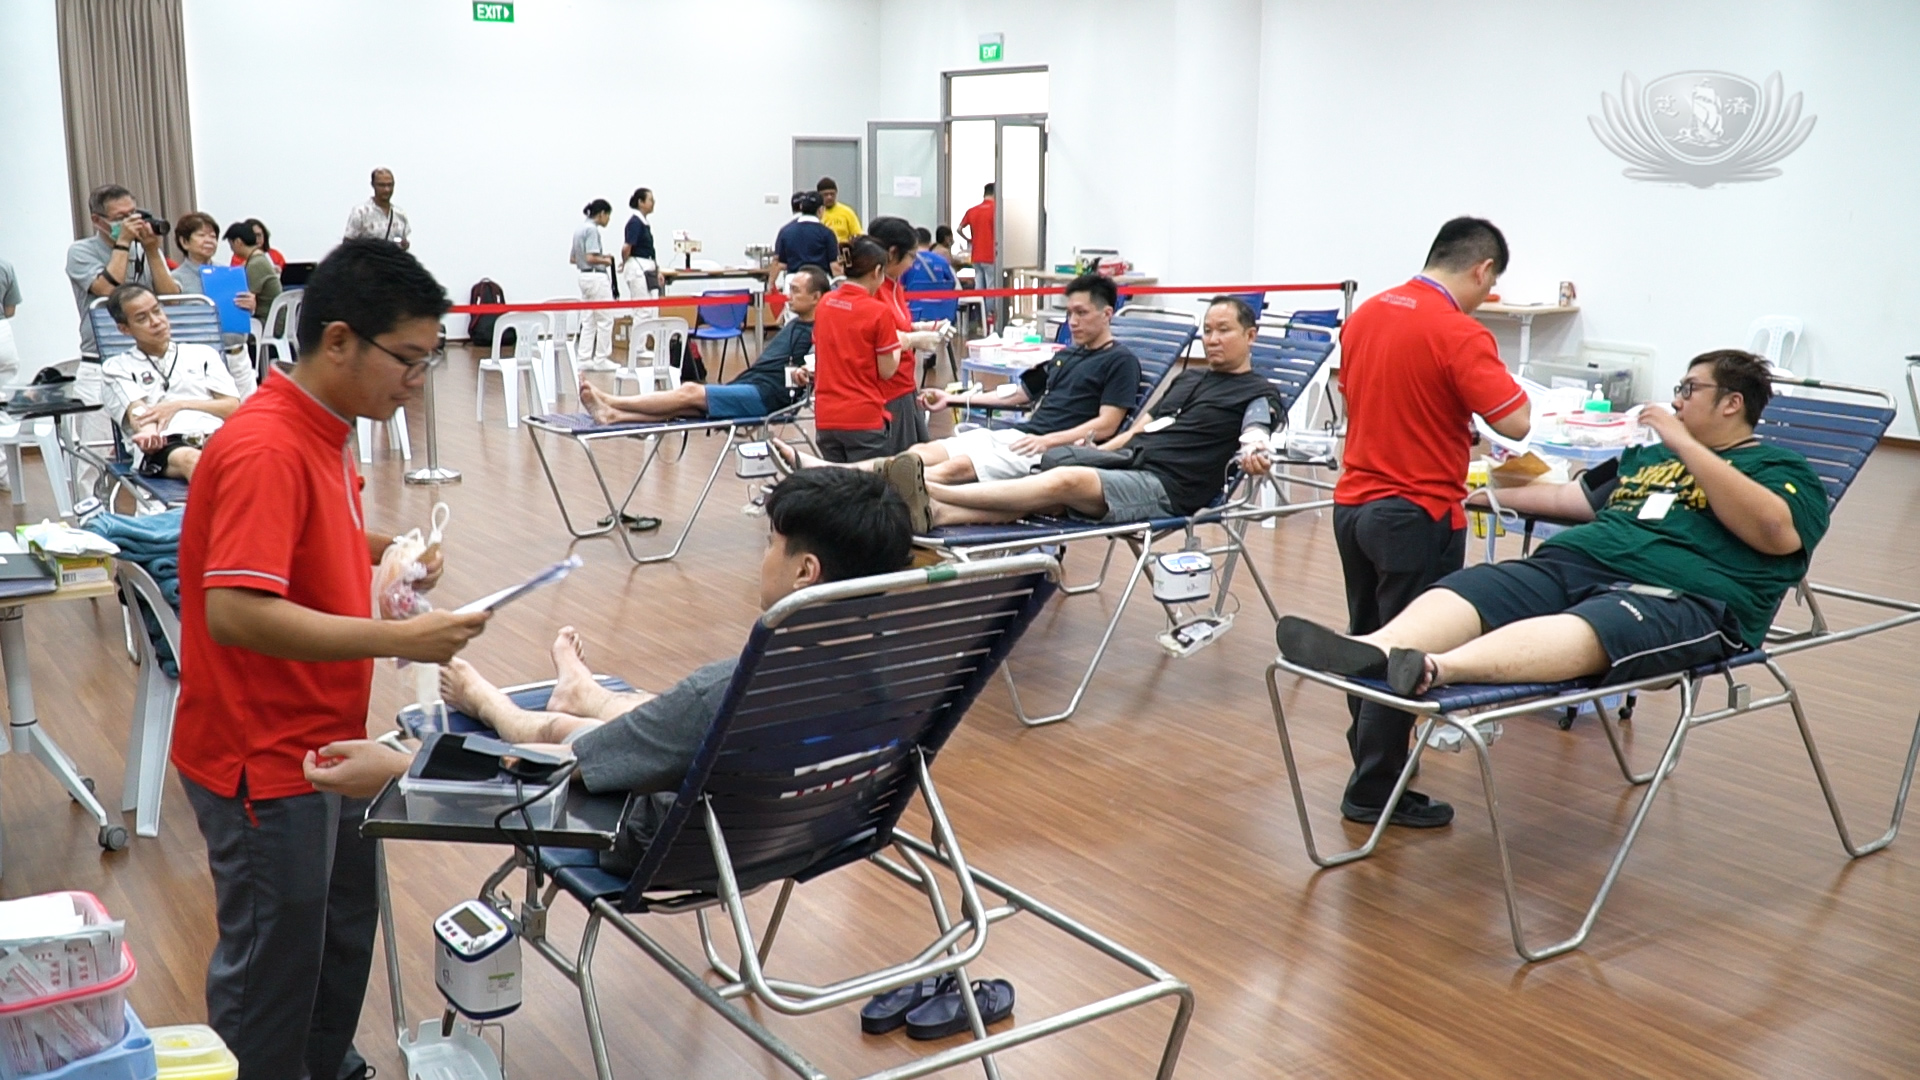 The public is still donating blood amid coronavirus pandemic